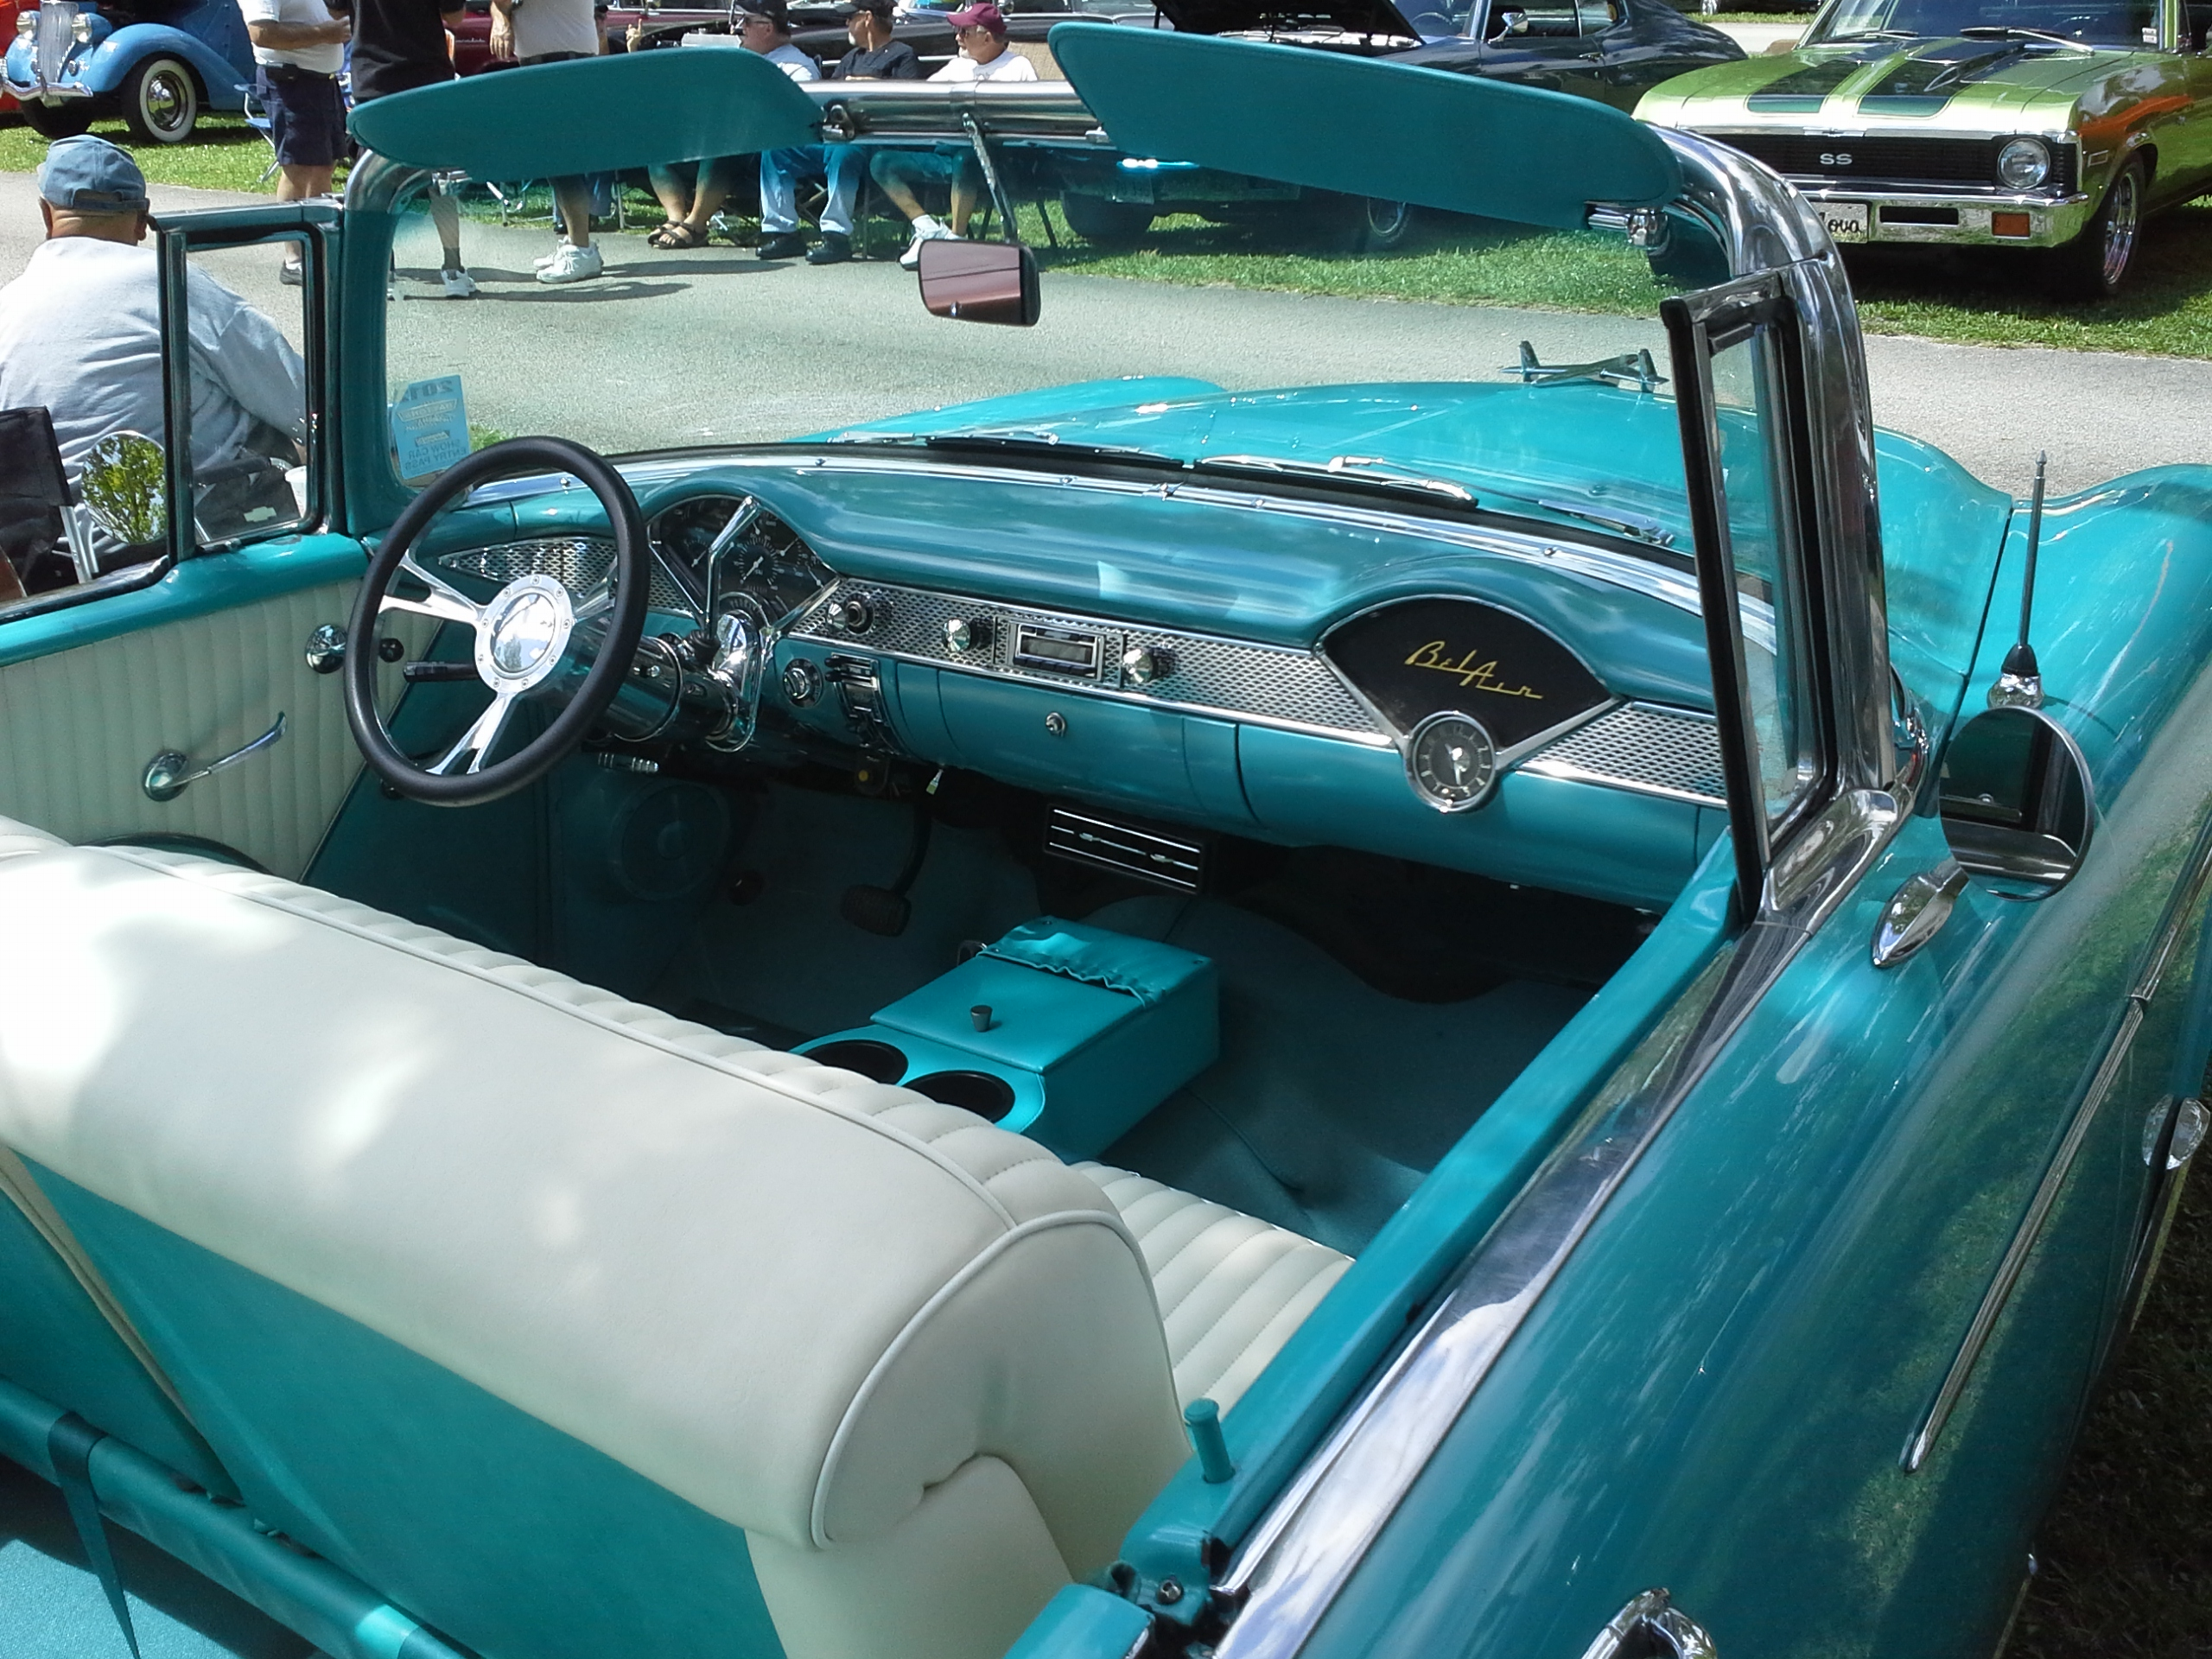 Interior of classic car